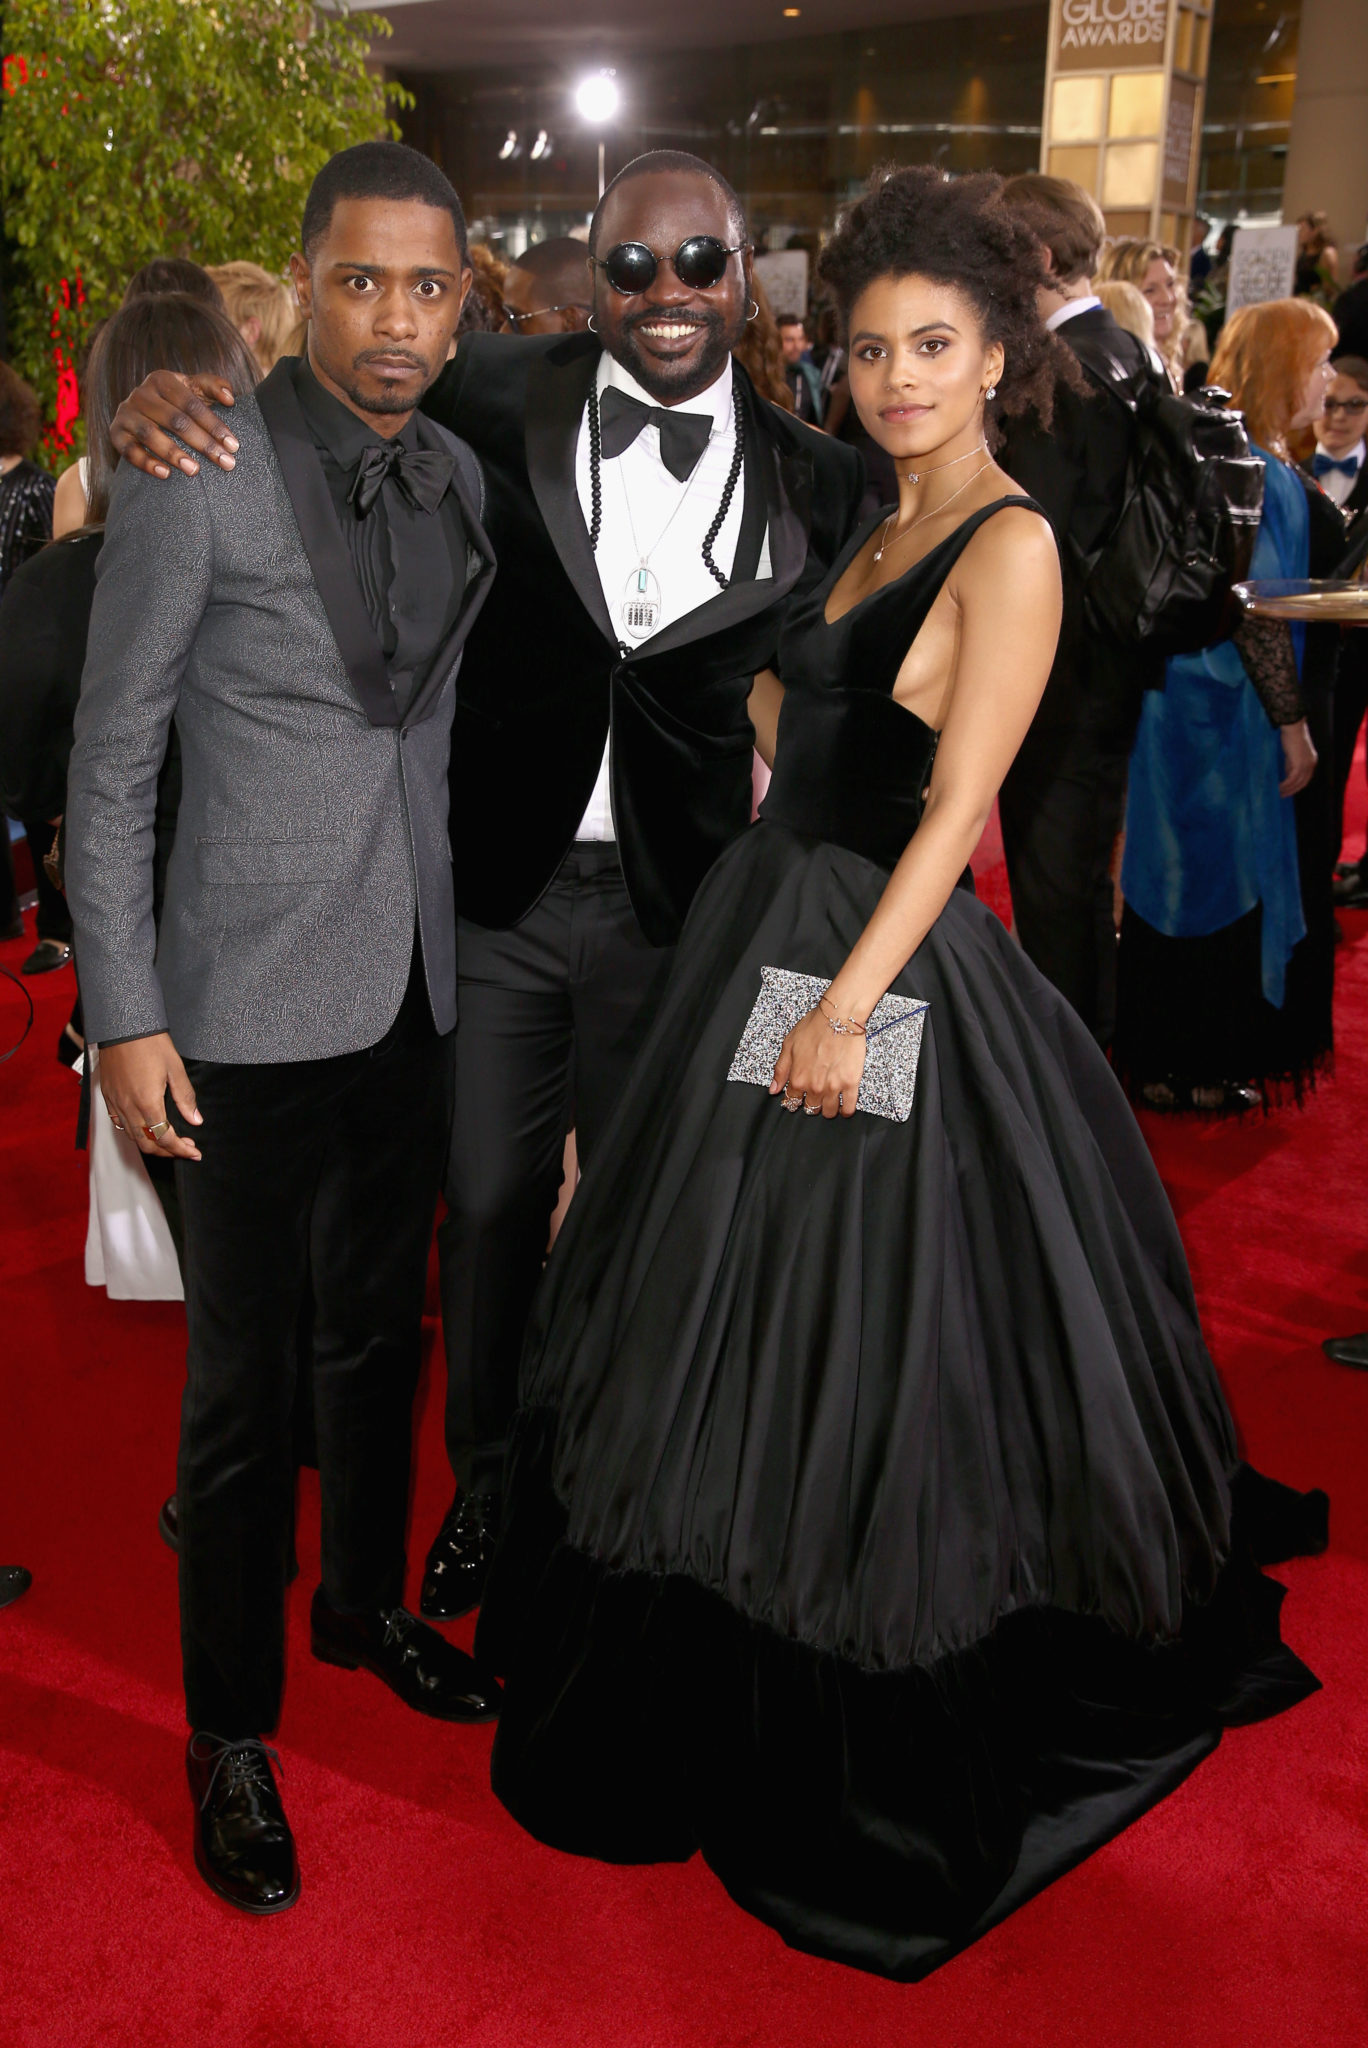 Red Carpet Looks From The 74th Annual Golden Globes